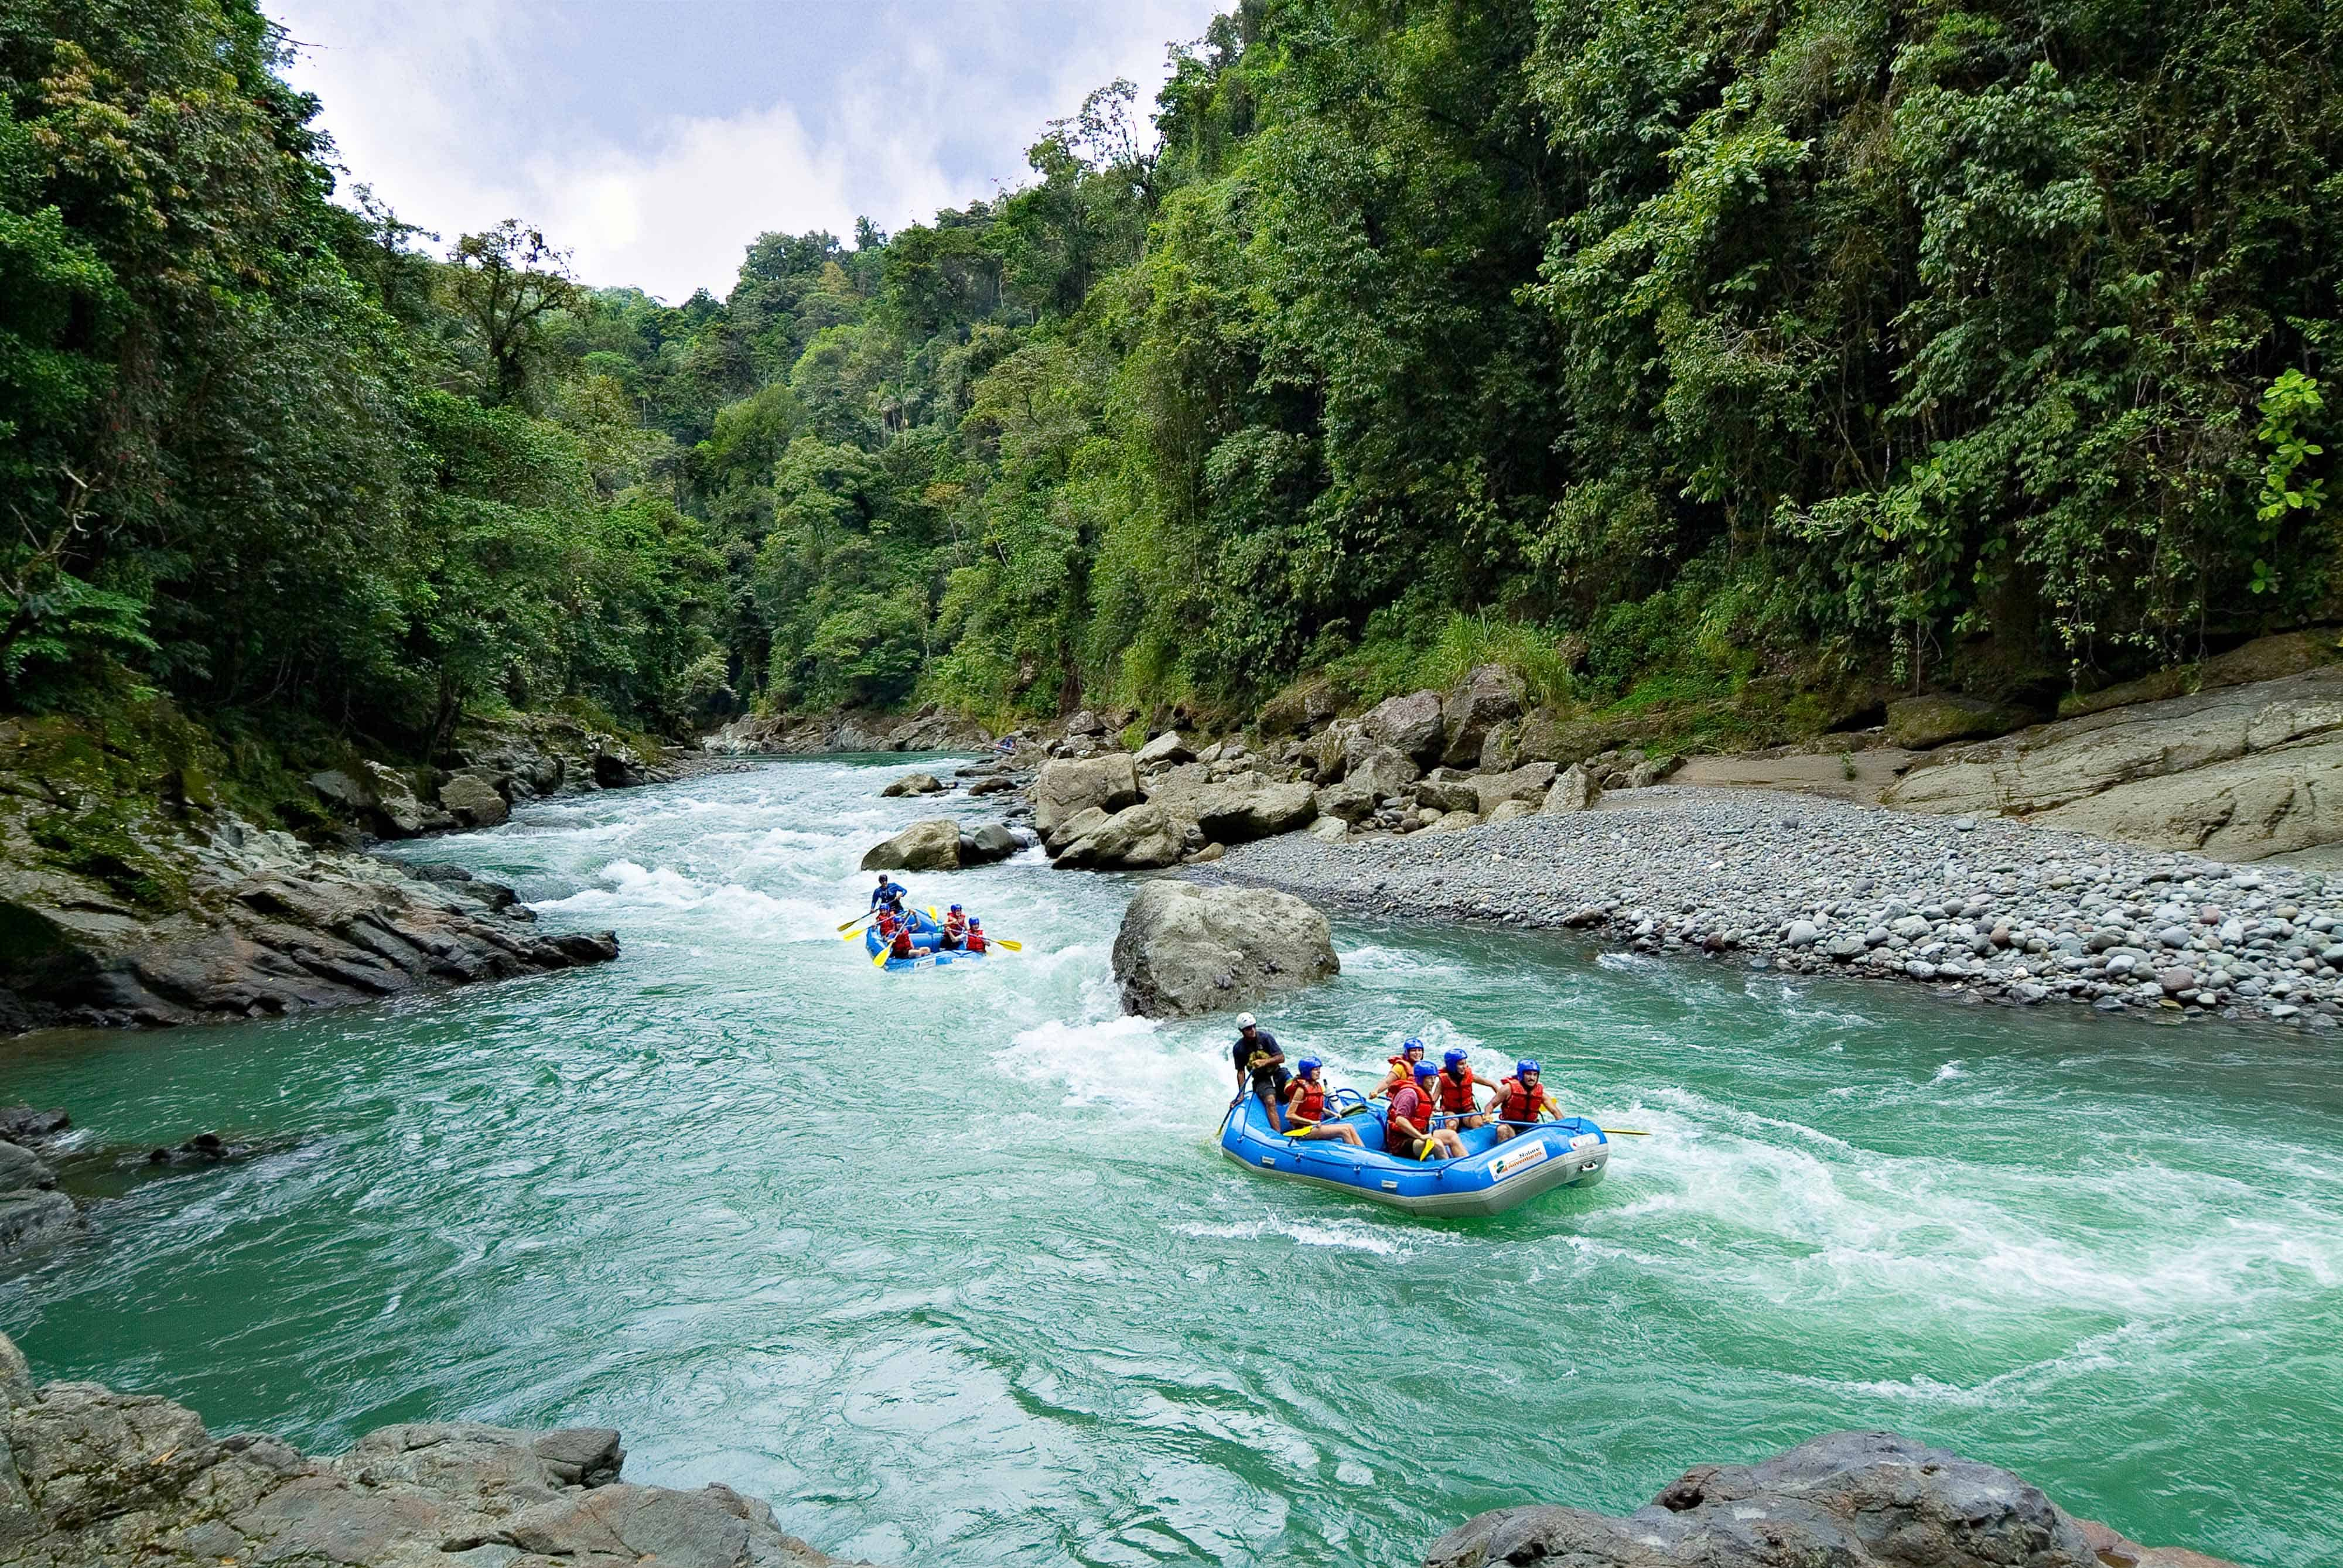 Two rafts of Costa Rica travelers floating down a turquoise river with rocks and green trees lining the river.